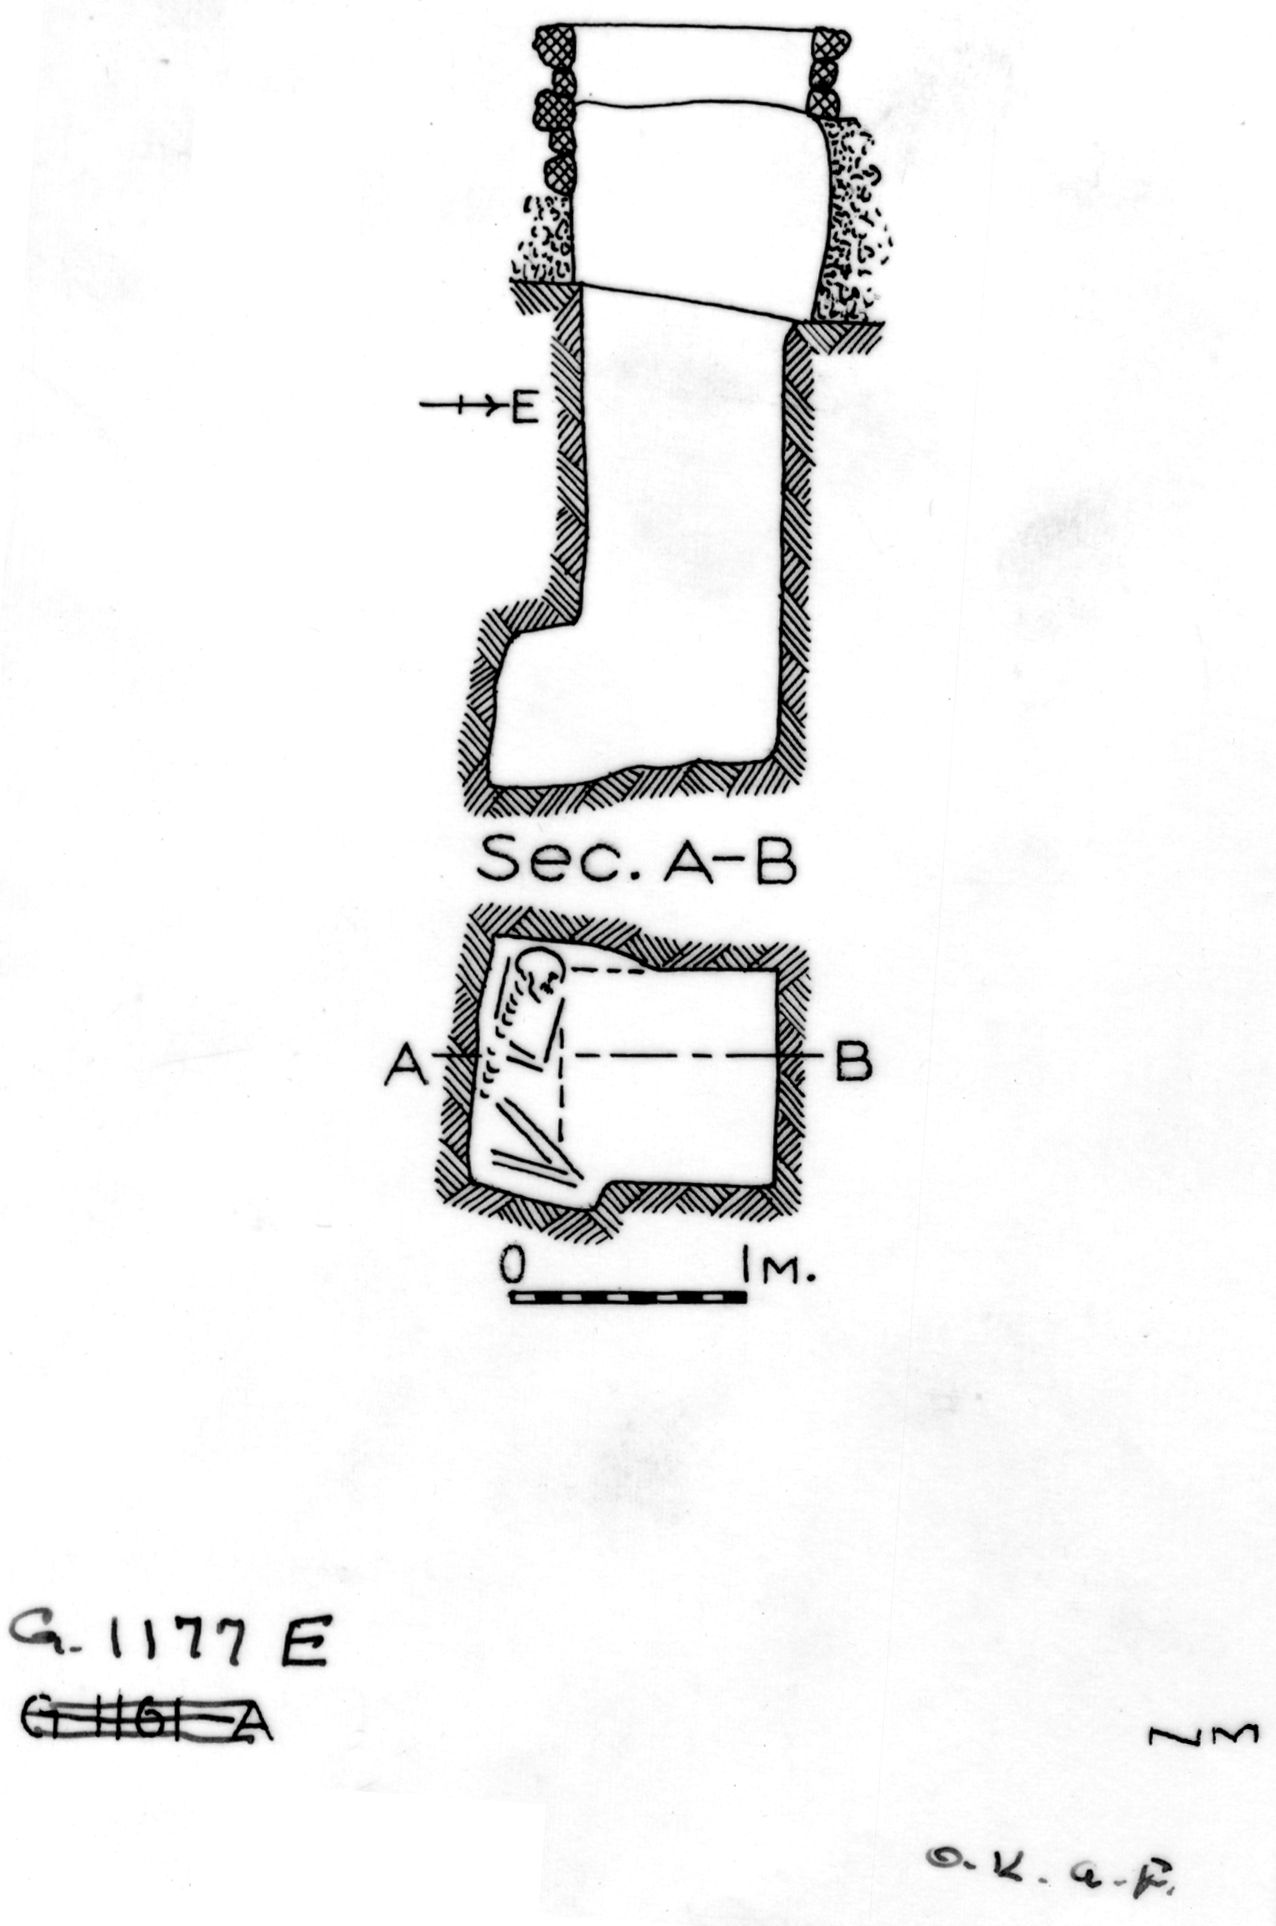 Maps and plans: G 1177, Shaft E